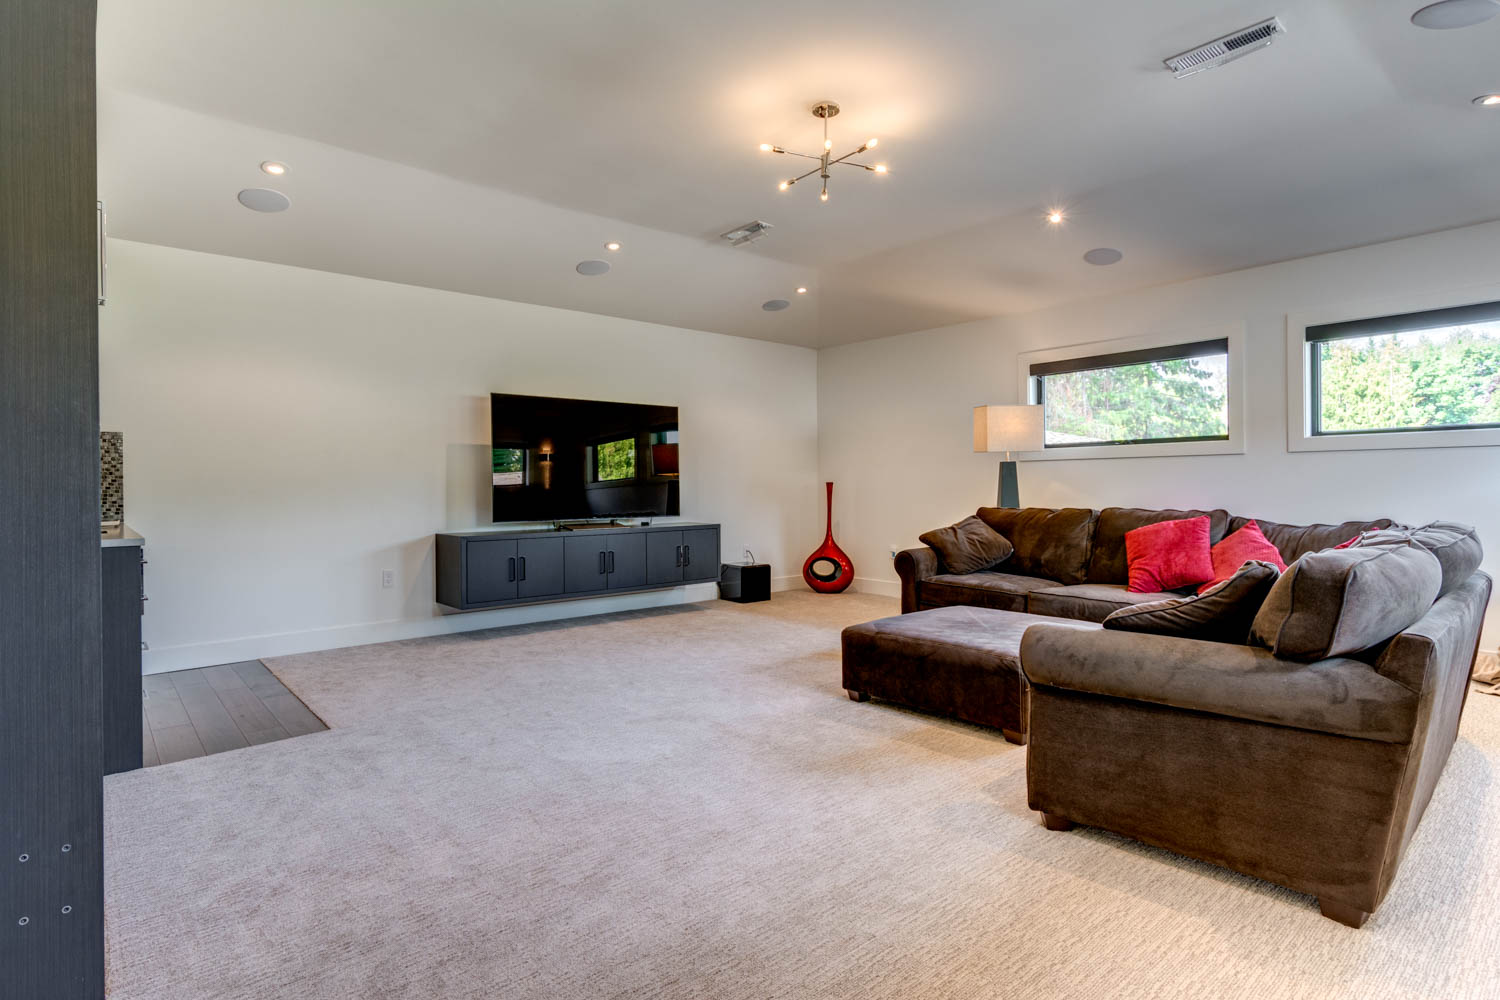 West One Homes Morey Court 083